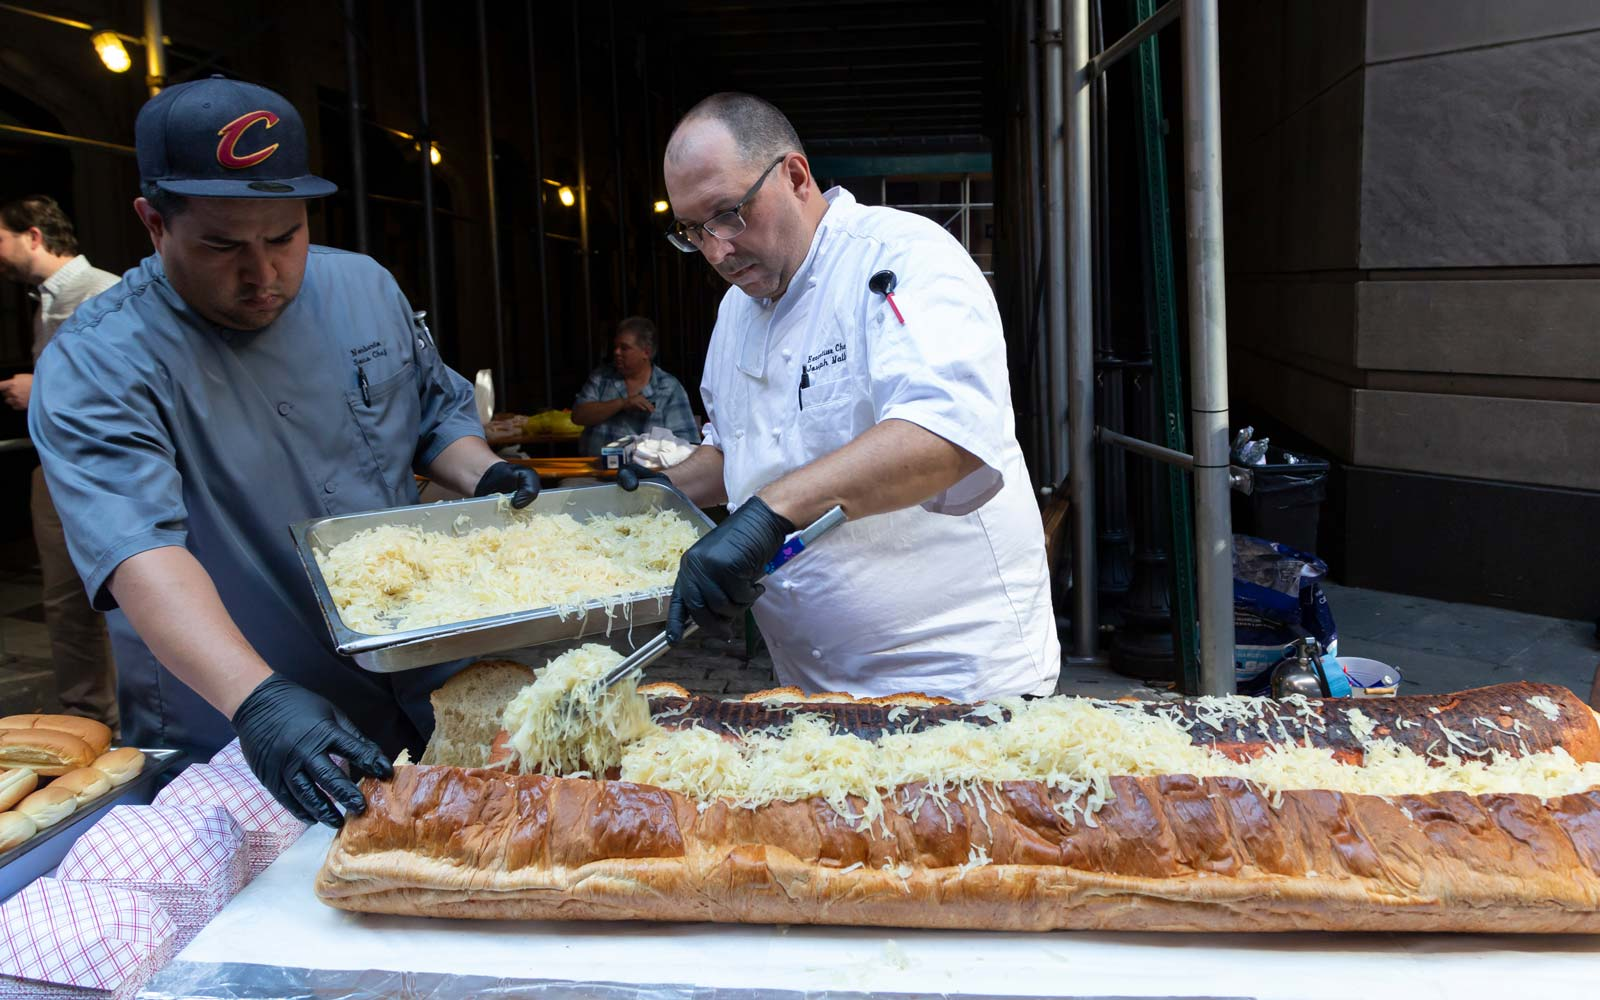 'World's Largest Hot Dog' Title Claimed by Brooklyn Brand